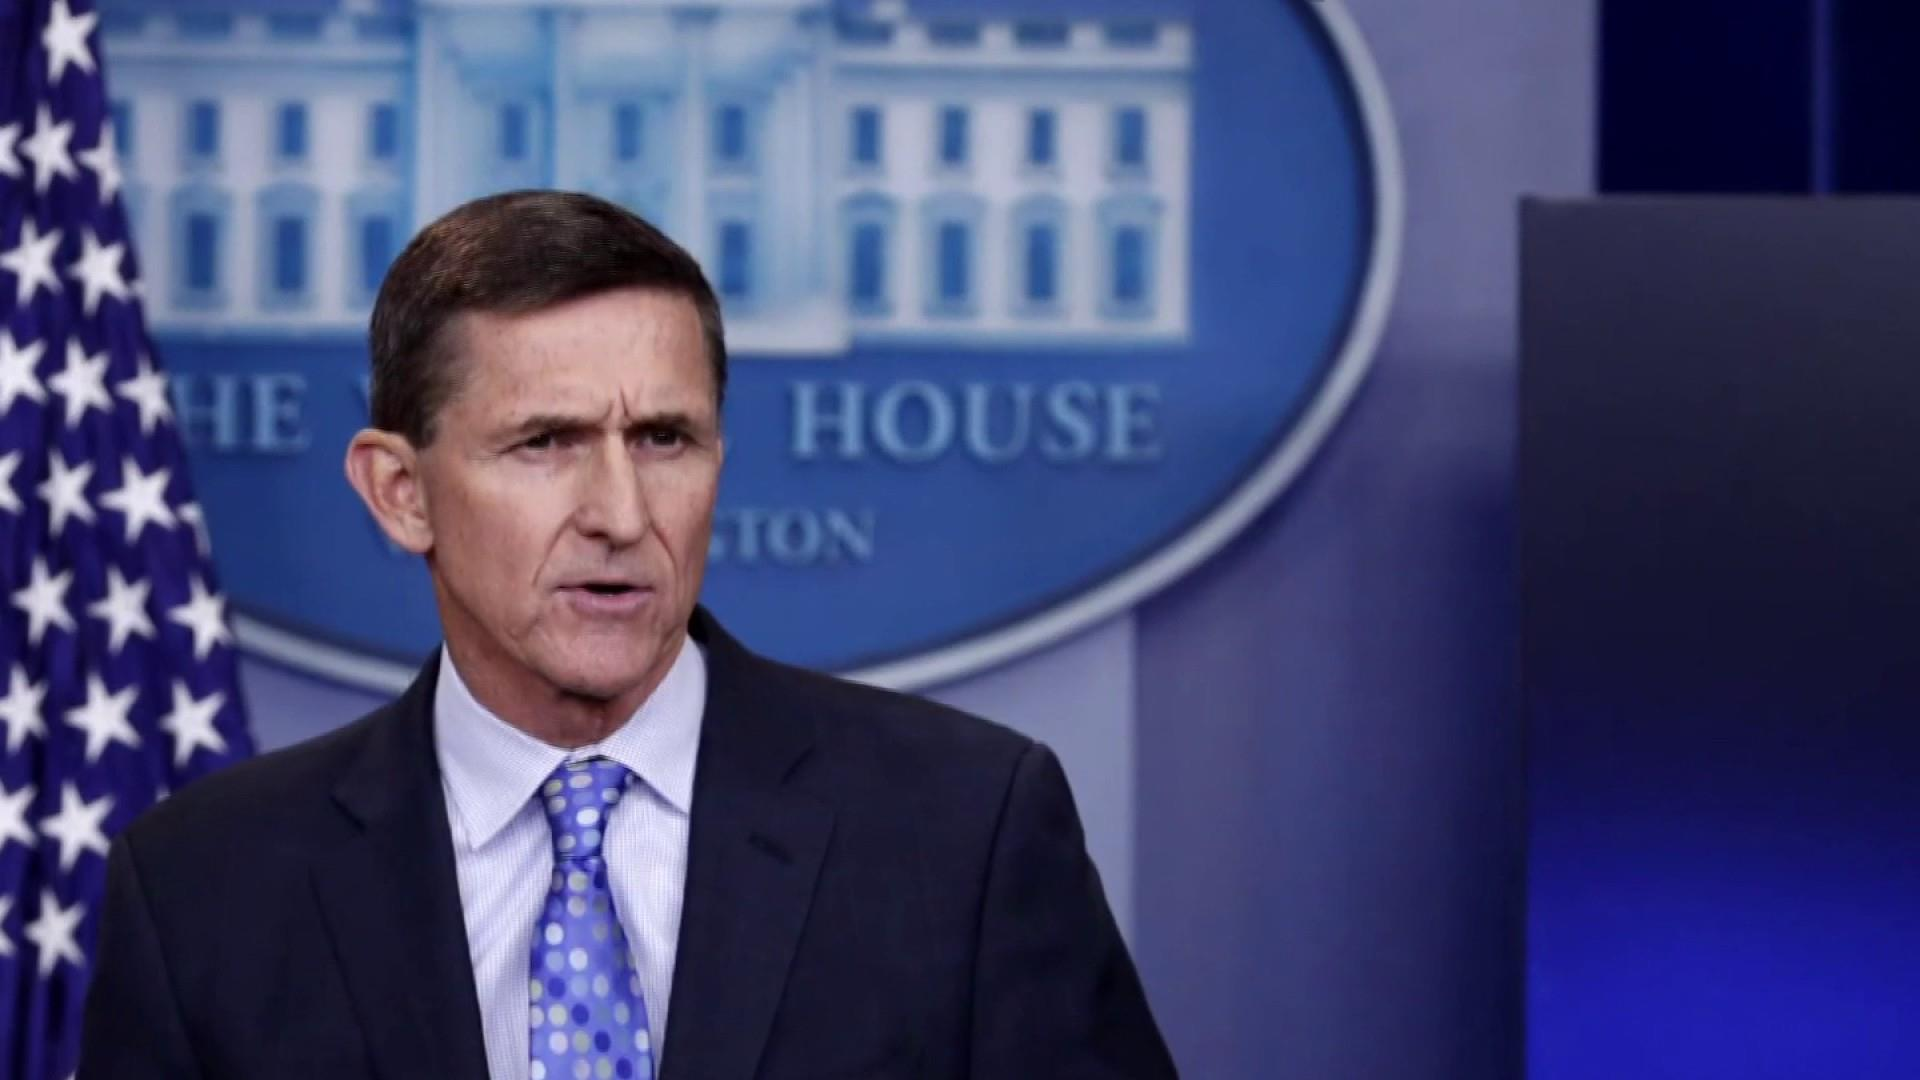 Flynn told Mueller that people tied to Trump and Congress tried to obstruct probe